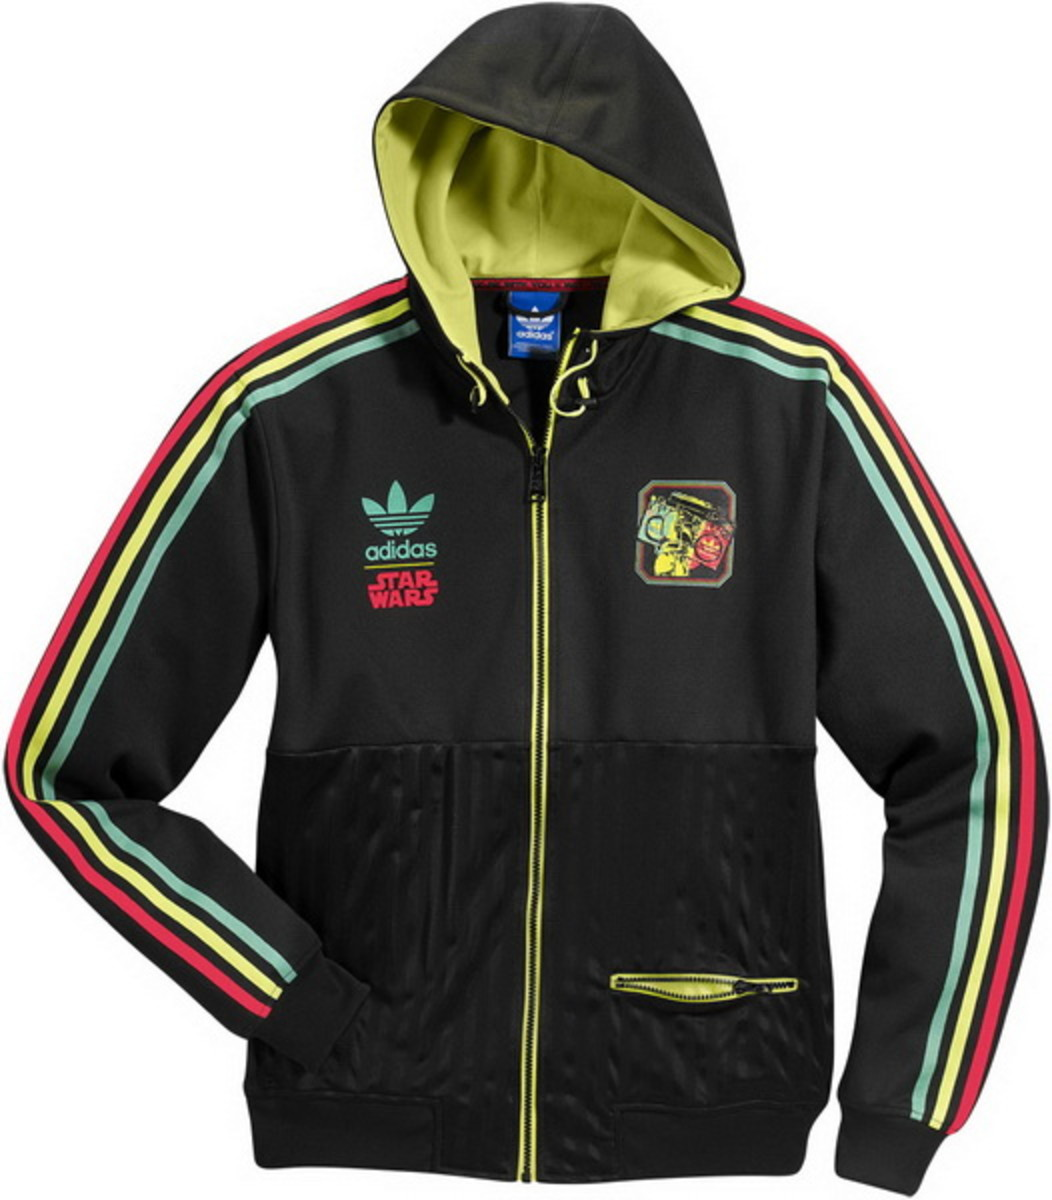 star-wars-adidas-originals-2011-apparel-23